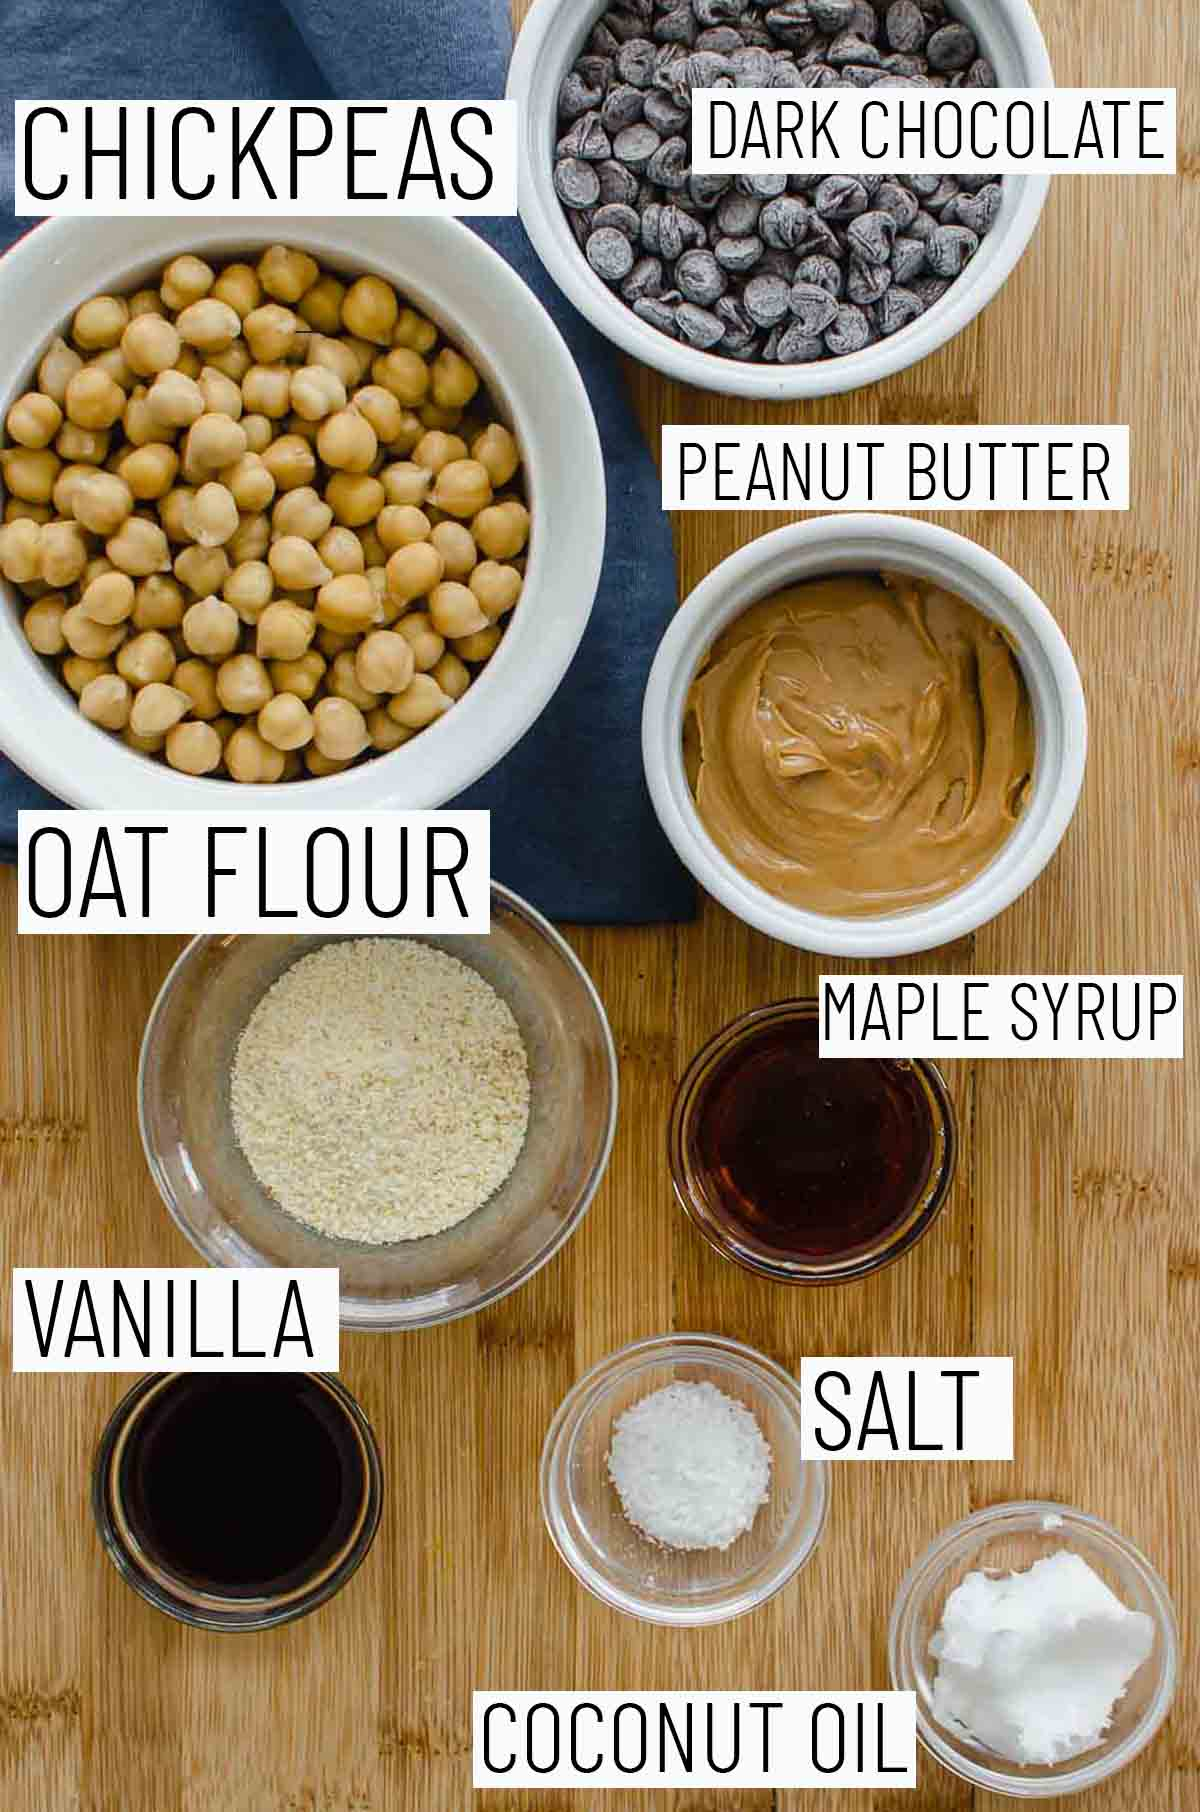 Flat lay image of recipe ingredients including maple syrup, peanut butter, oat flour, vanilla, coconut oil, salt, and chickpeas.